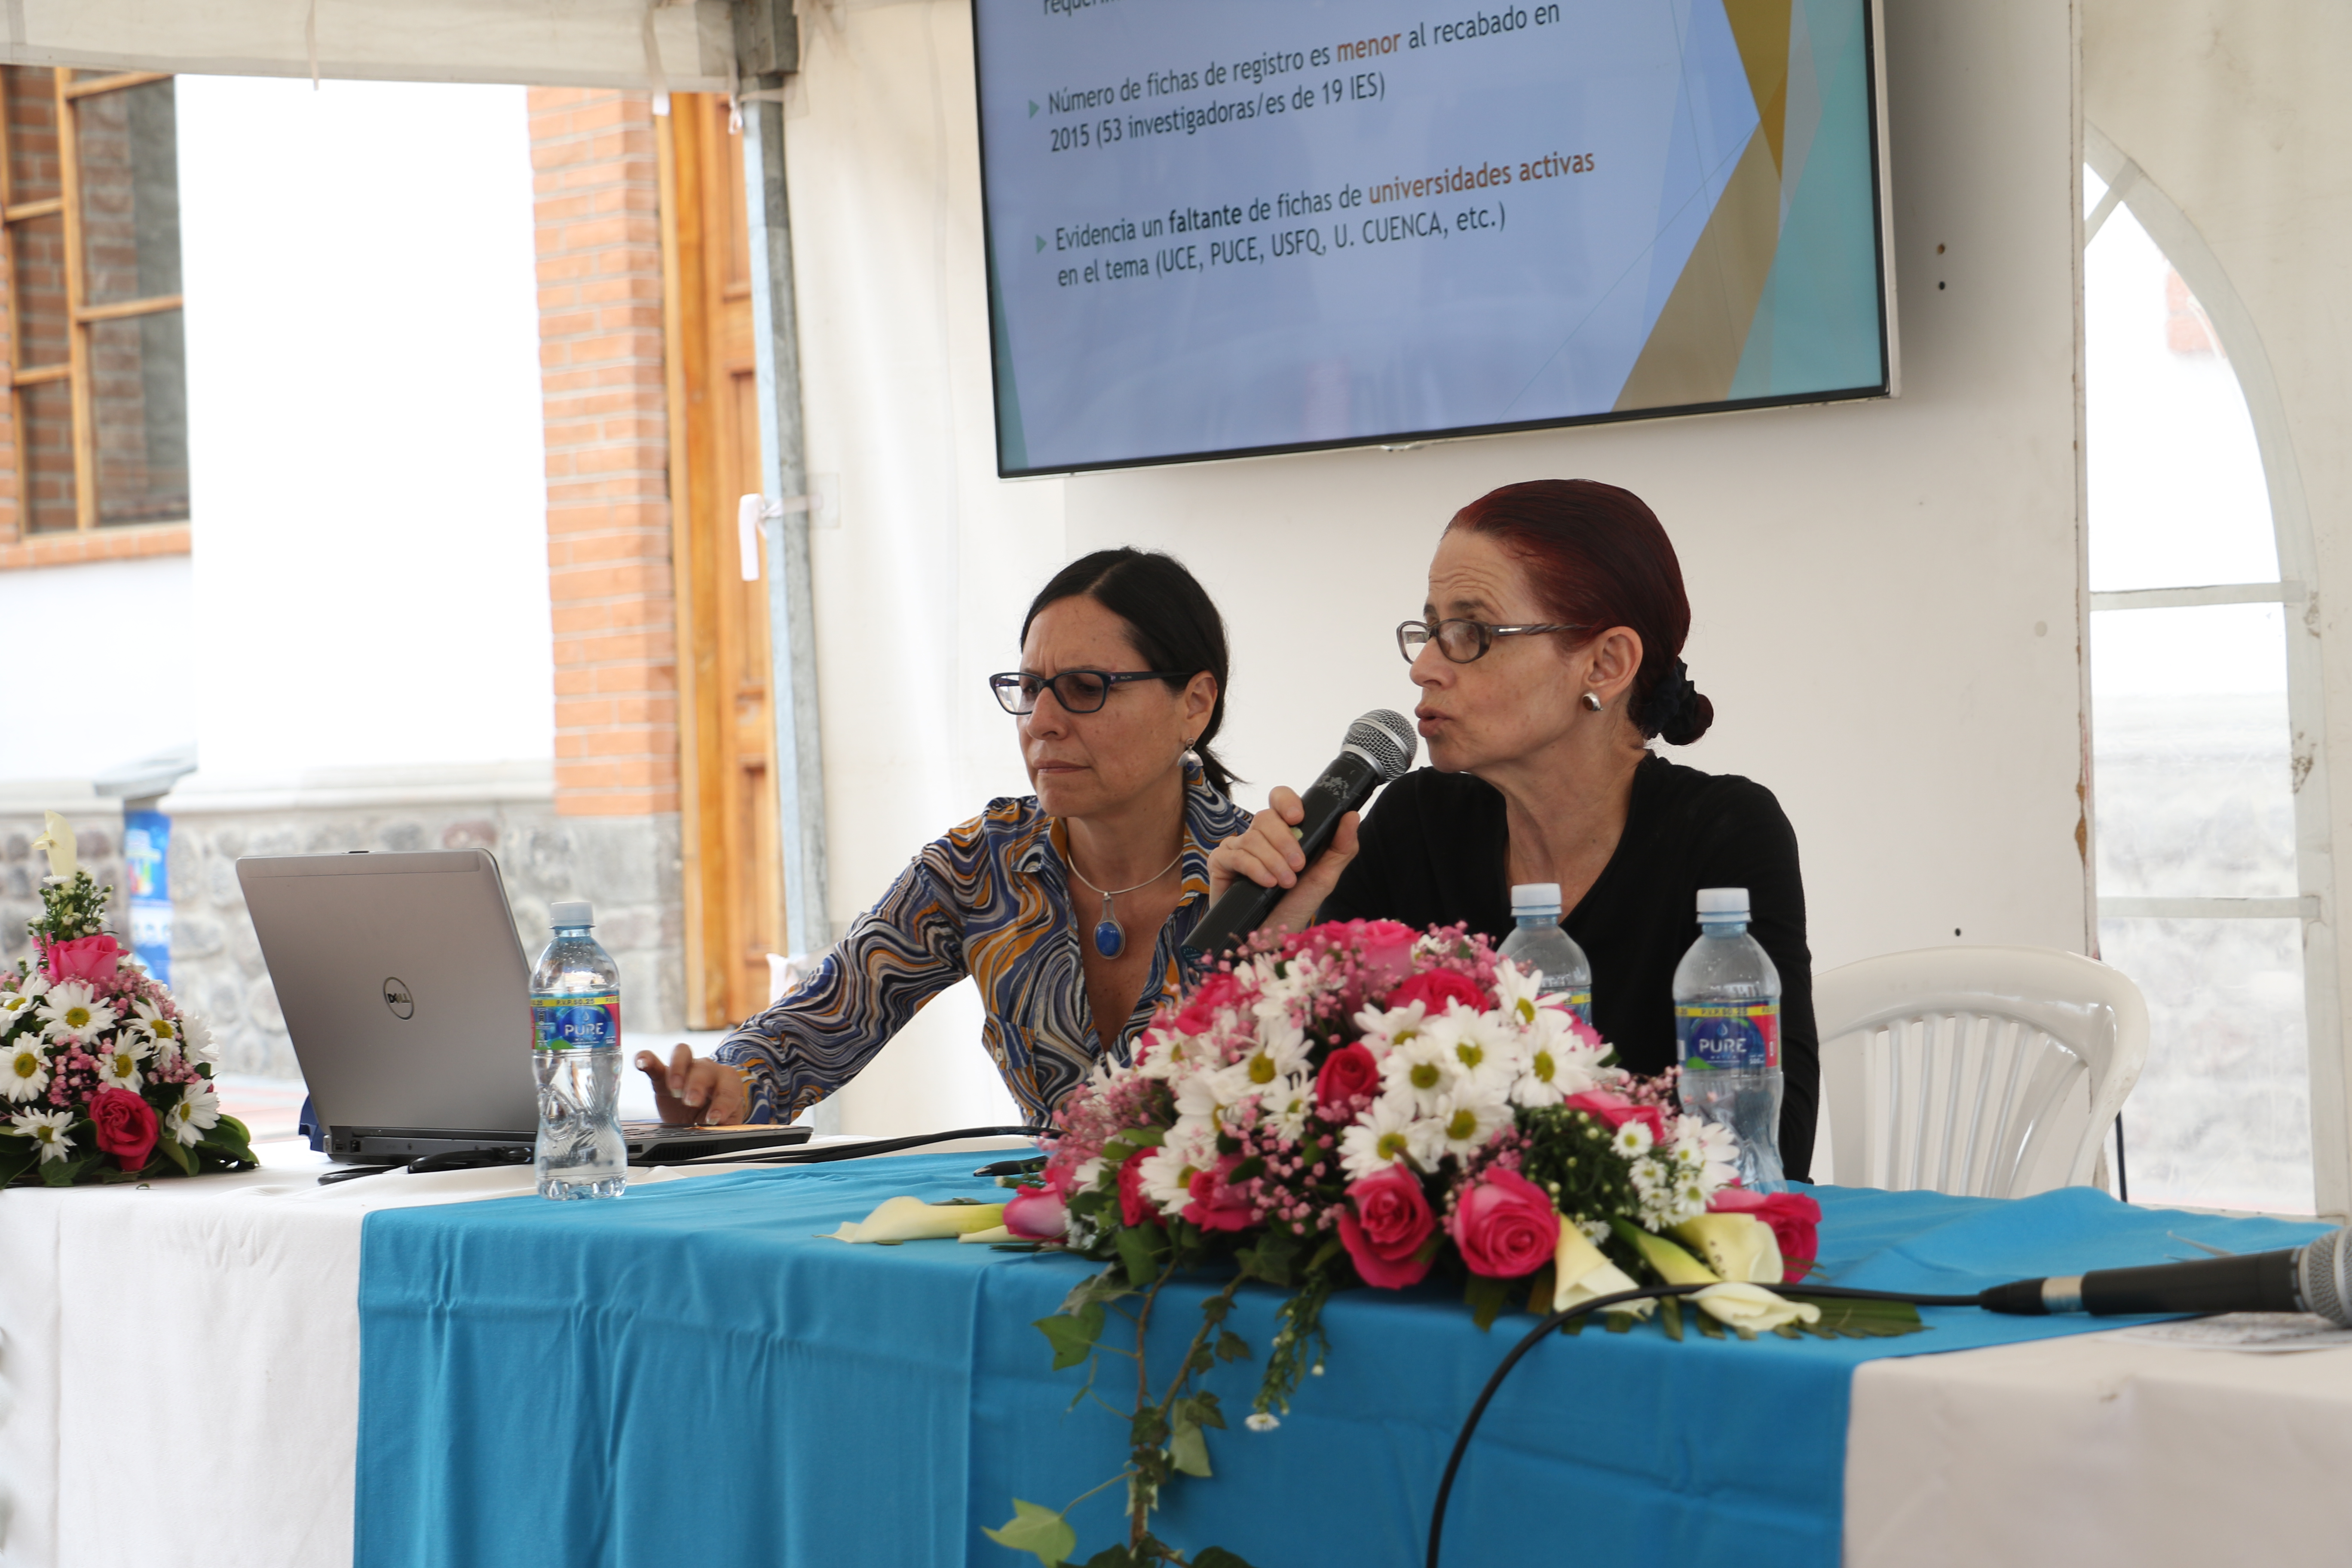 Higher Education and Gender Network to hold meeting at Yachay Tech